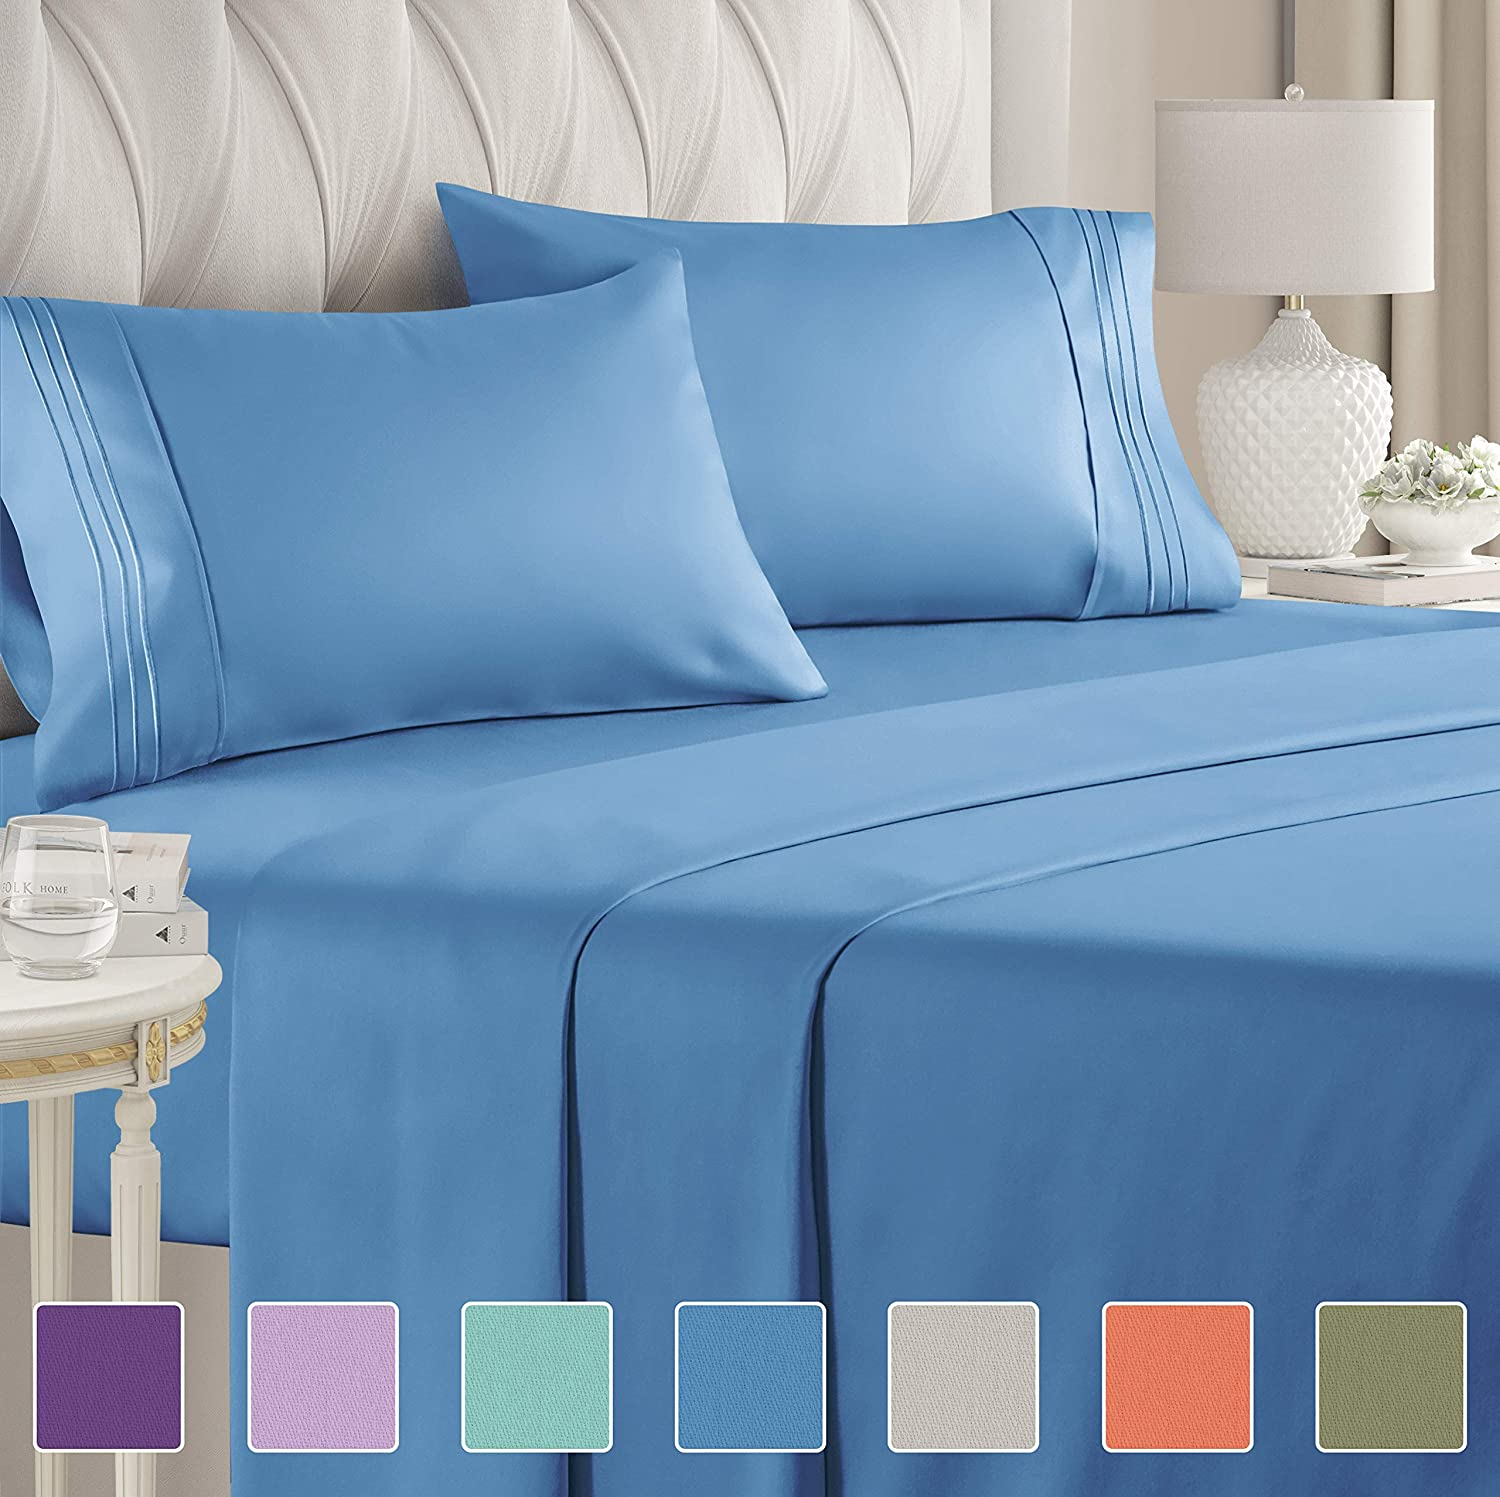 California King Size Sheet Set – 4 Piece - Hotel Luxury Bed - Extra Soft - Deep Pockets - Breathable & Cooling - Wrinkle Free - Comfy – Denim Blue Sheets - Cali Kings Sheets Denim Blue 4PC